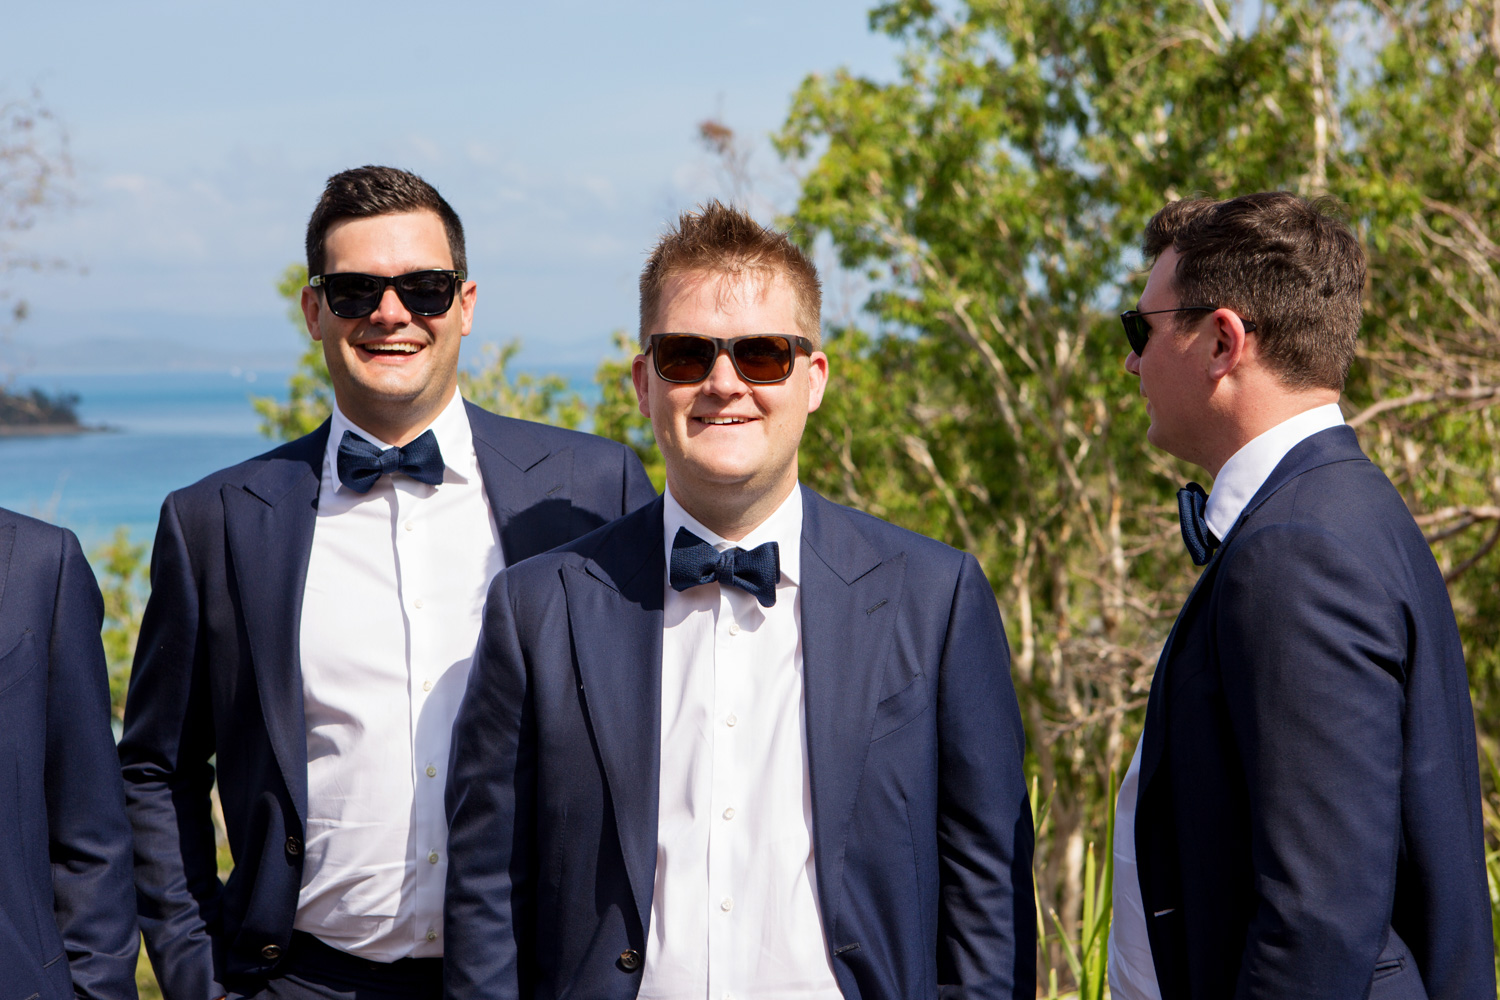 wedding-0102-suits-bowties-groom-groomsmen-swagger-australia.jpg